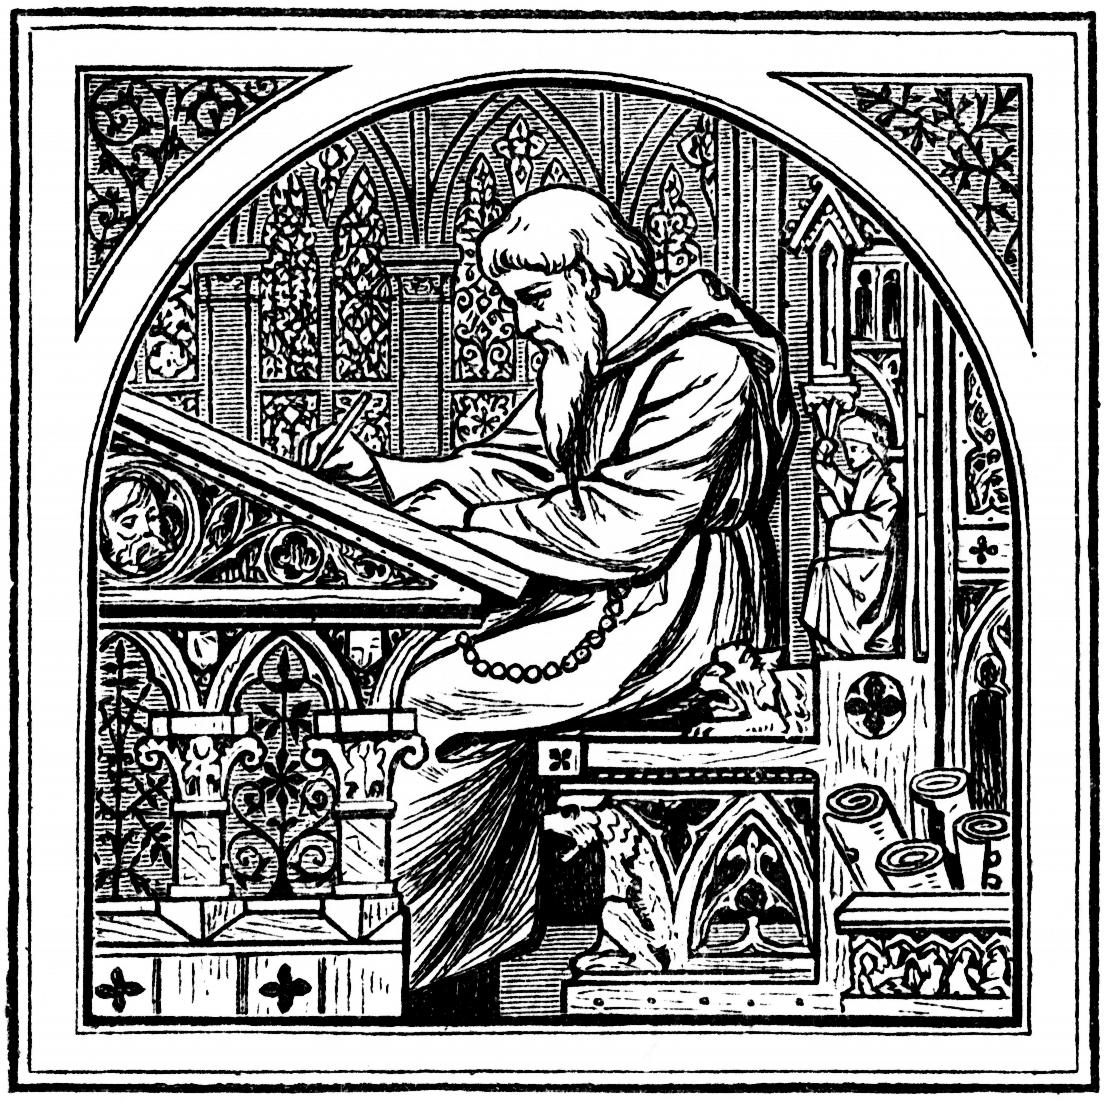 The medieval scholar, at work in the future archive